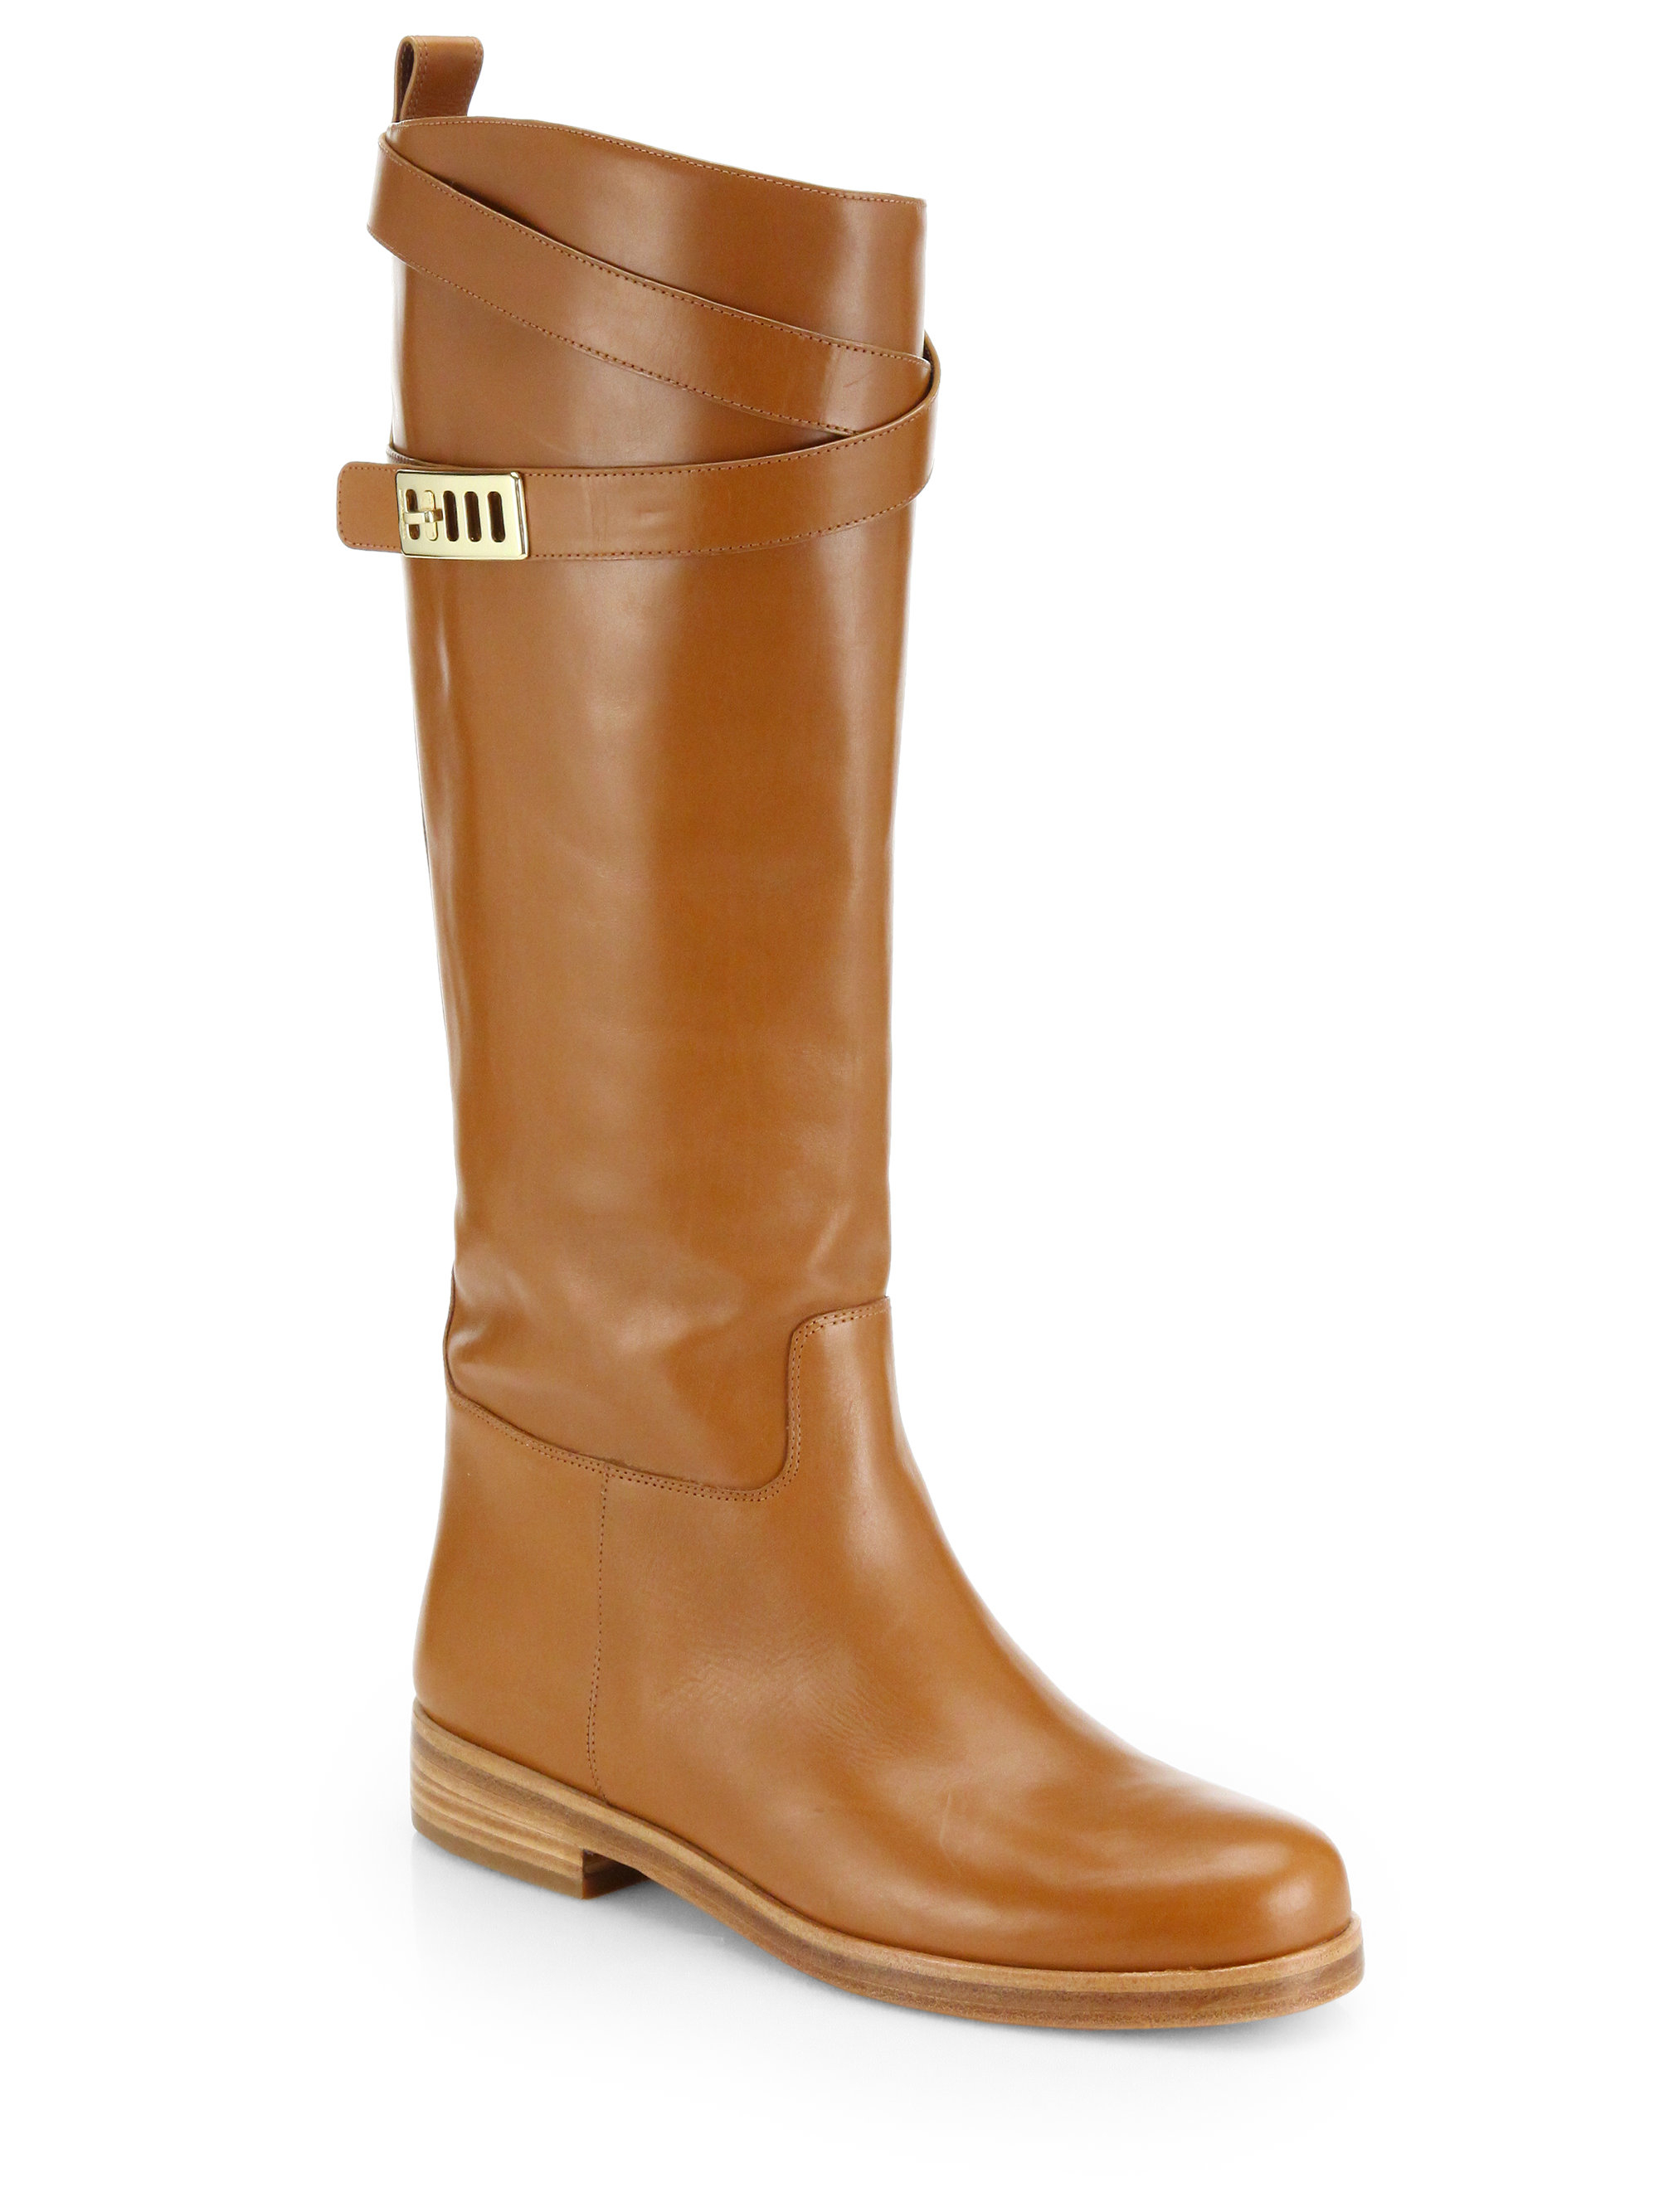 michael kors brynlee leather knee high boots in brown lyst